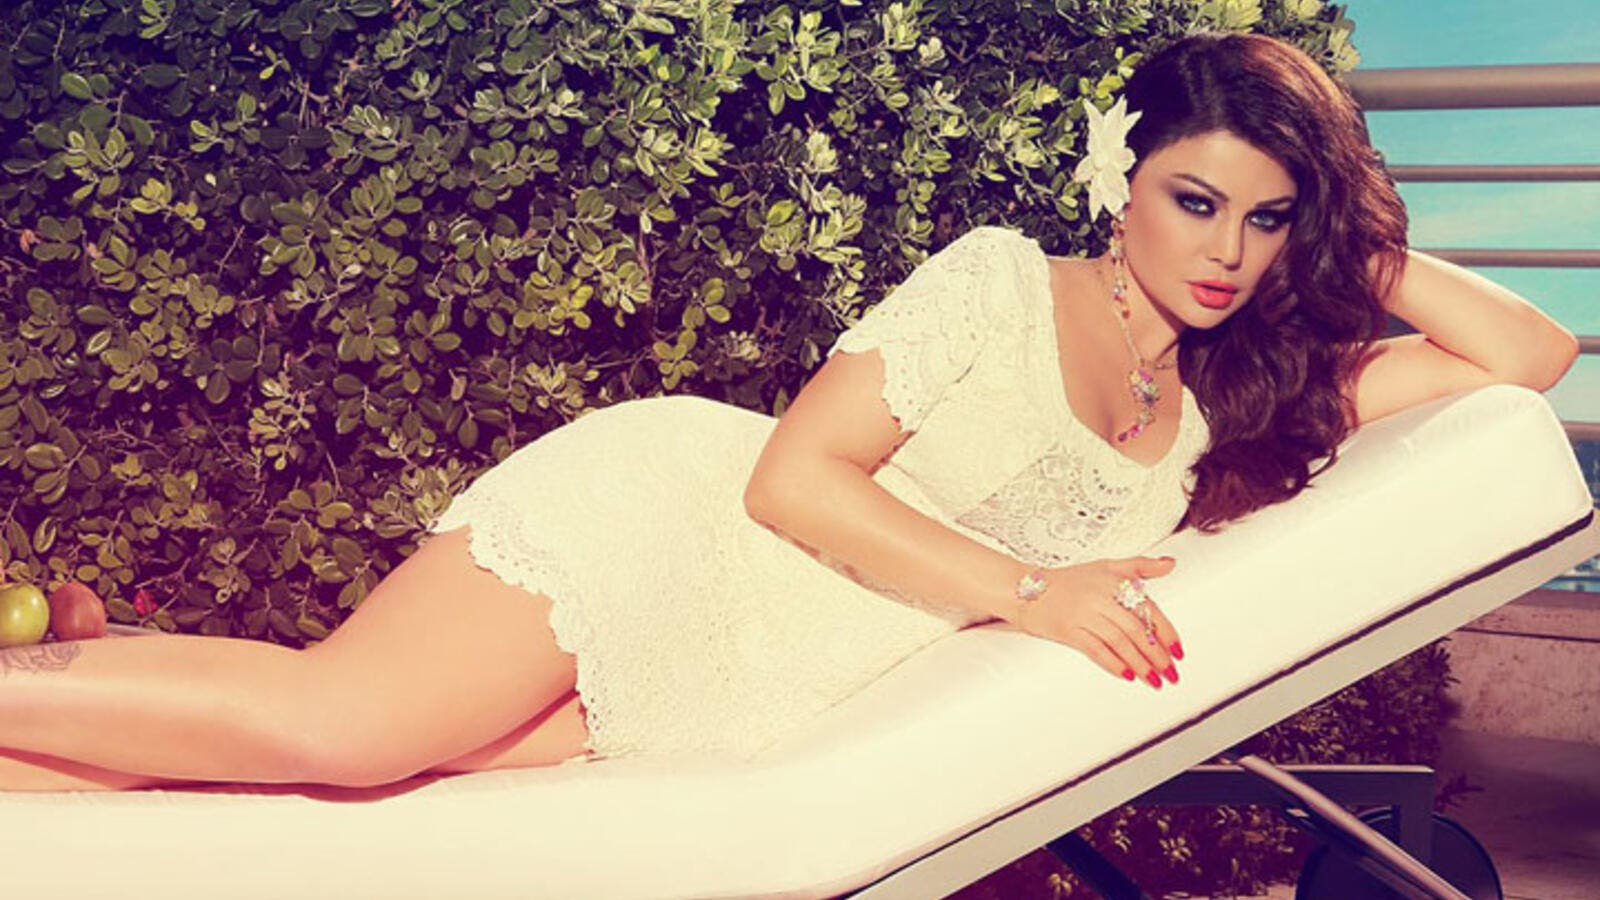 Sex kitten Haifa wants to try to make her rape film scene non-provocative. (Image: Facebook)